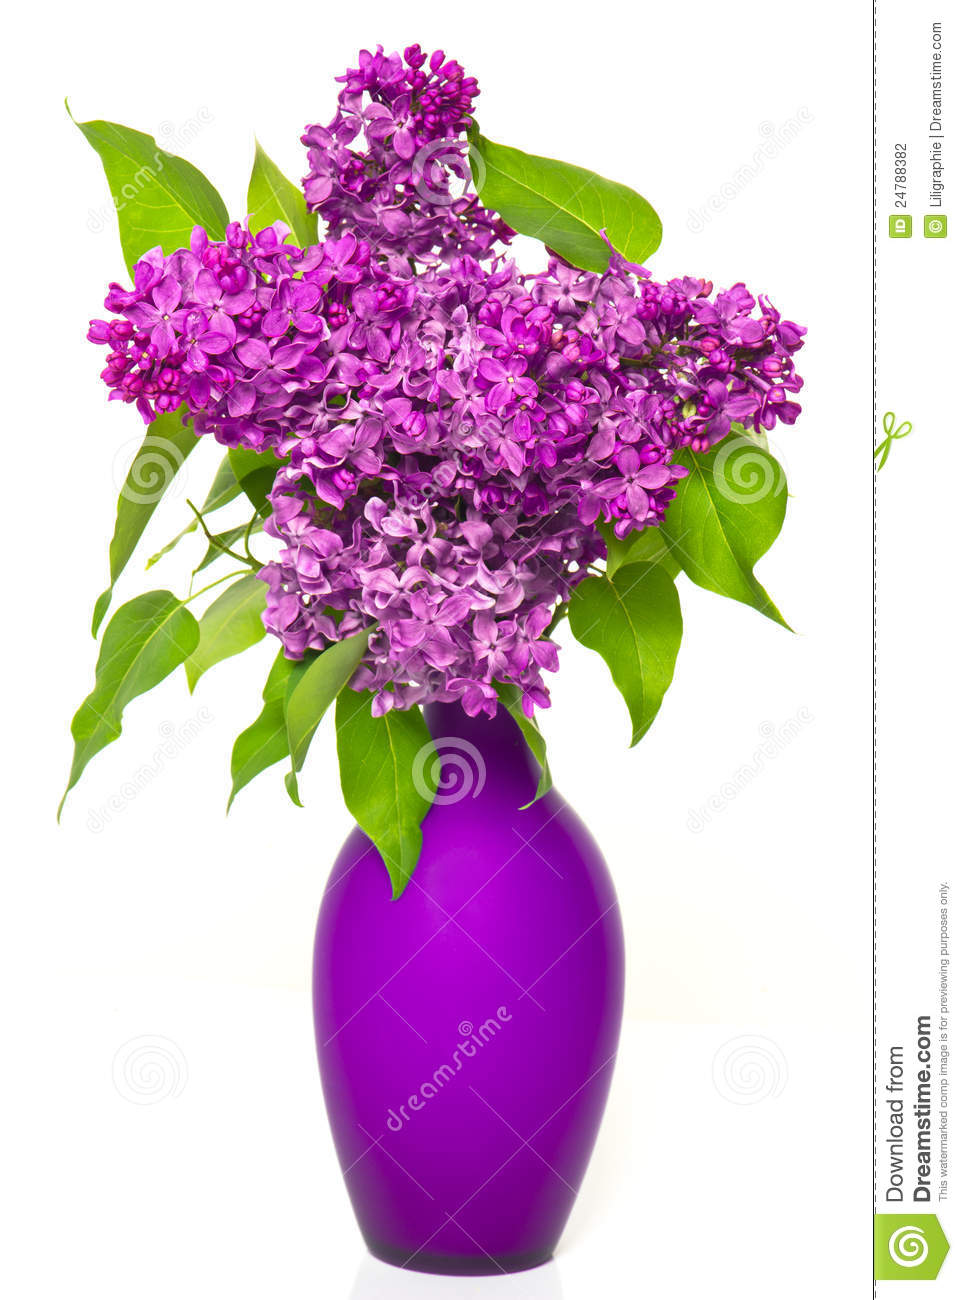 blossom center map with Stock Photography Bouquet Lilac Flowers Vase Image24788382 on Creating Gis West Roxbury Neighborhood Boston together with Stock Image Group Snowdrop Flowers Growing Row Isolat Image19253331 moreover See Lava Active Volcanoes furthermore Blossom Music Center Ohio Seating Chart in addition Stock Photography Bouquet Lilac Flowers Vase Image24788382.